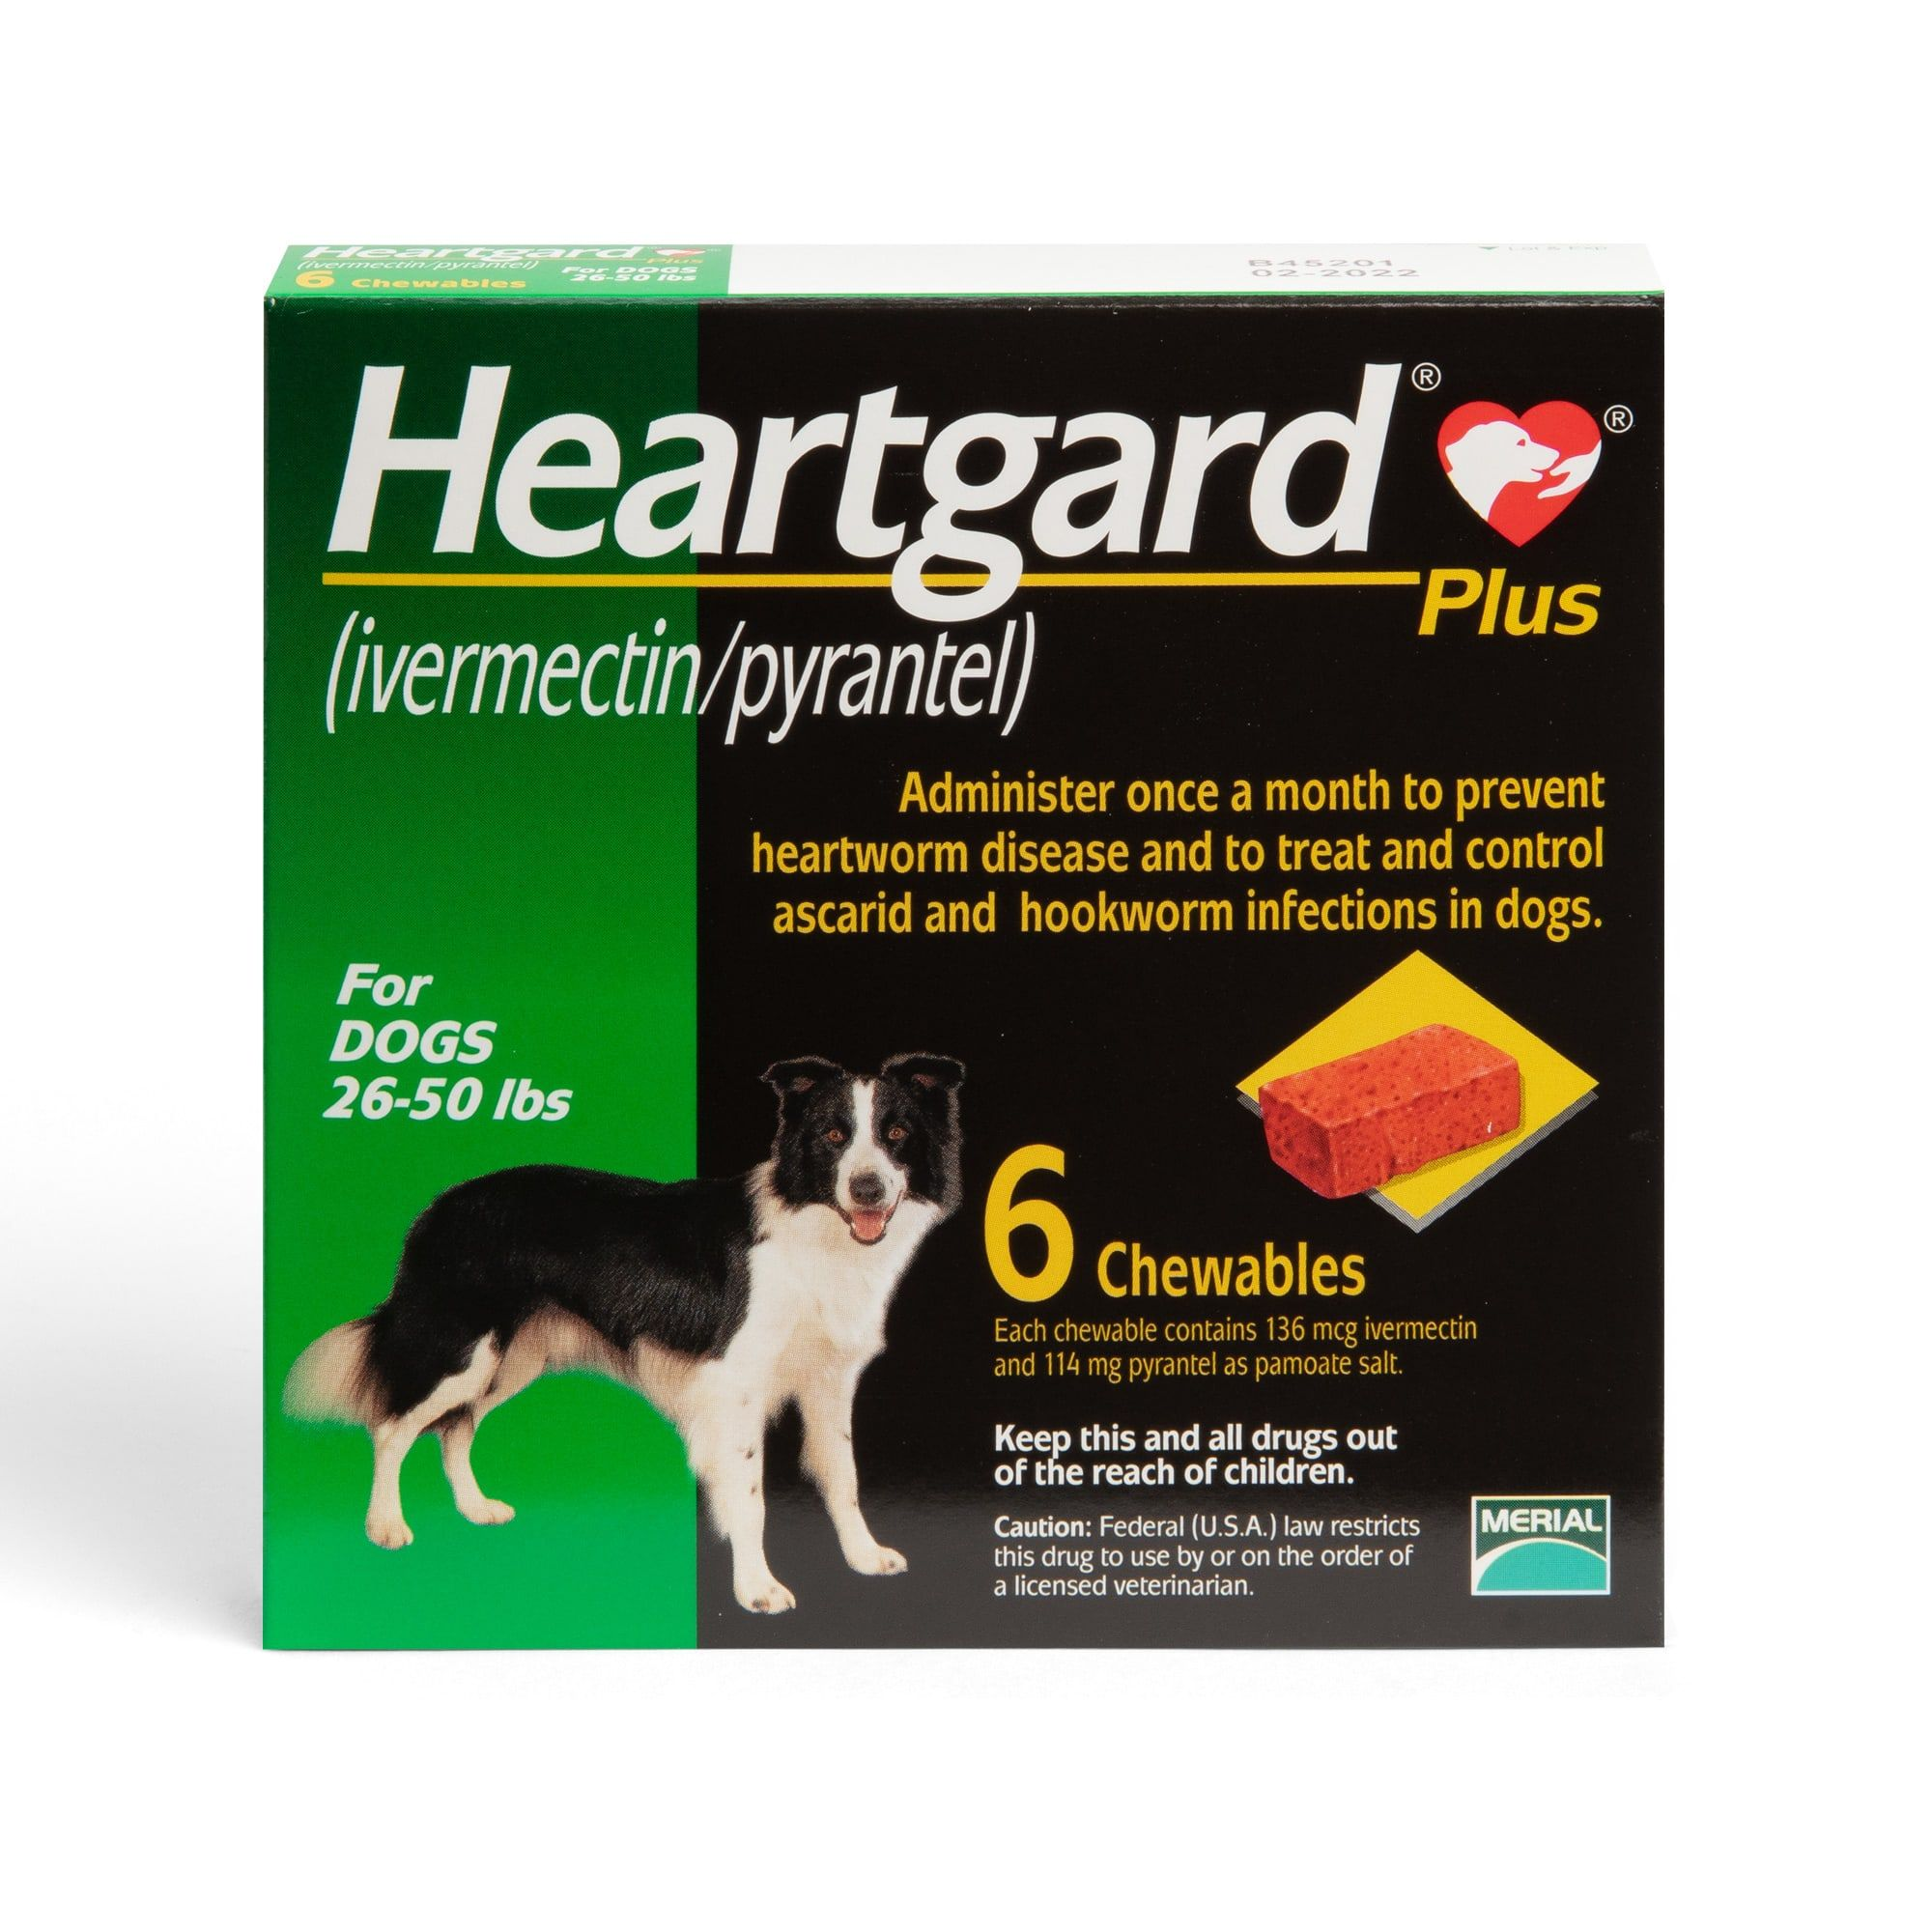 Heartgard Plus Chewables For Dogs 26 To 50 Lbs 6 Count Petco In 2020 Heartworm Prevention Heartworm Disease Heartworm